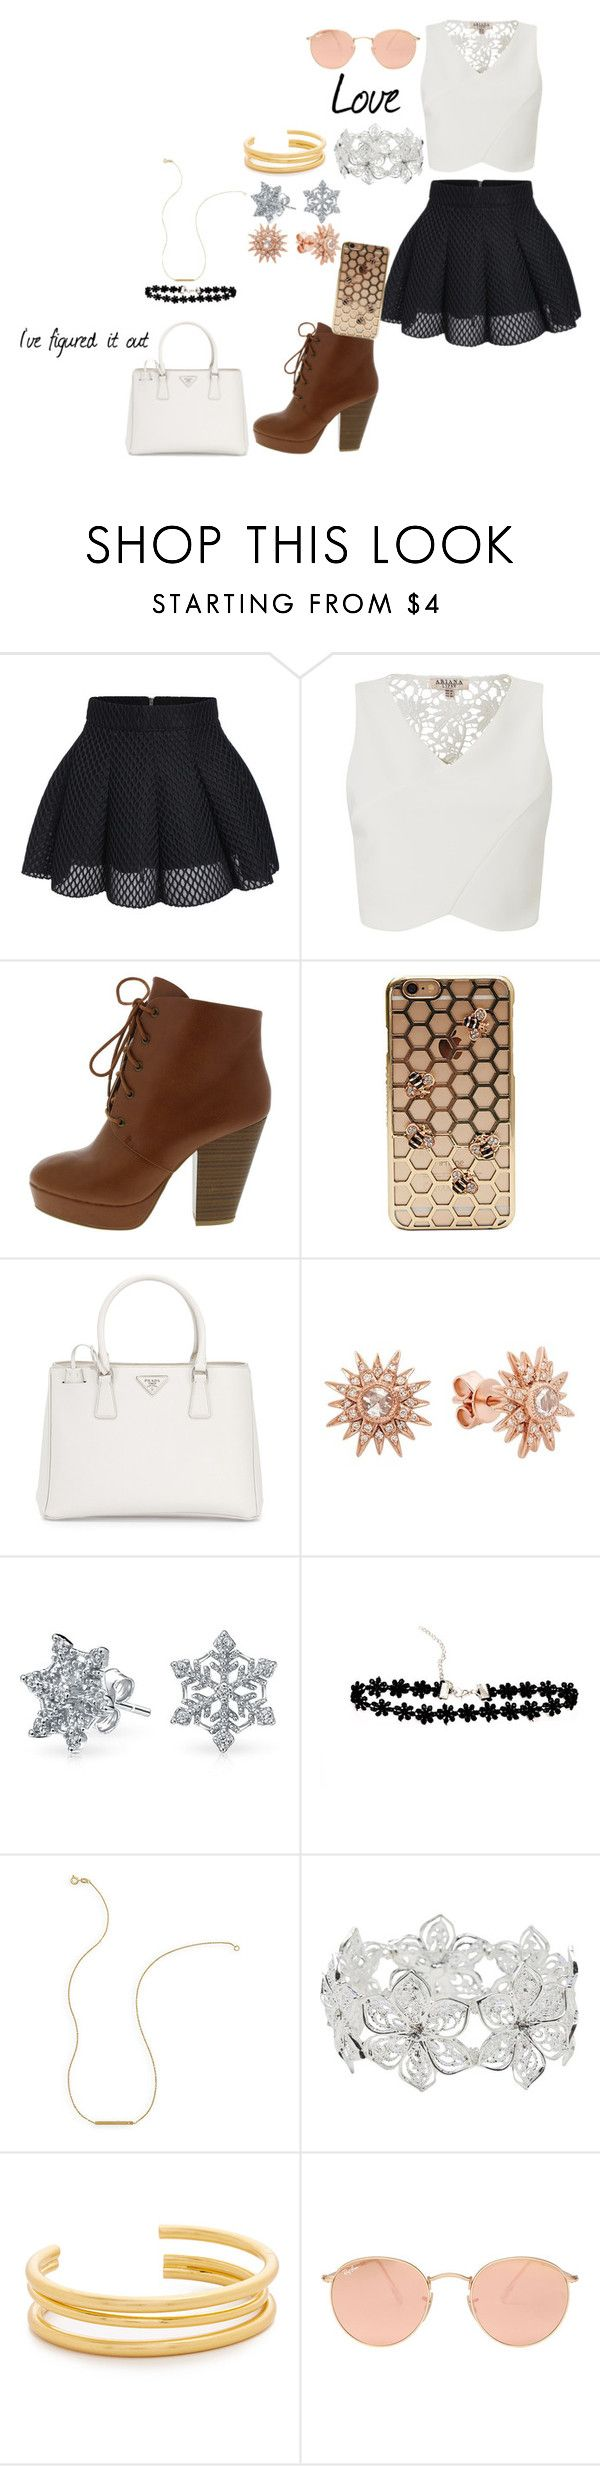 """""""There is this thing called Love"""" by smokeylovebae ❤ liked on Polyvore featuring Lipsy, Prada, Kenza Lee, Bling Jewelry, Wish by Amanda Rose, M&Co, Madewell and Ray-Ban"""